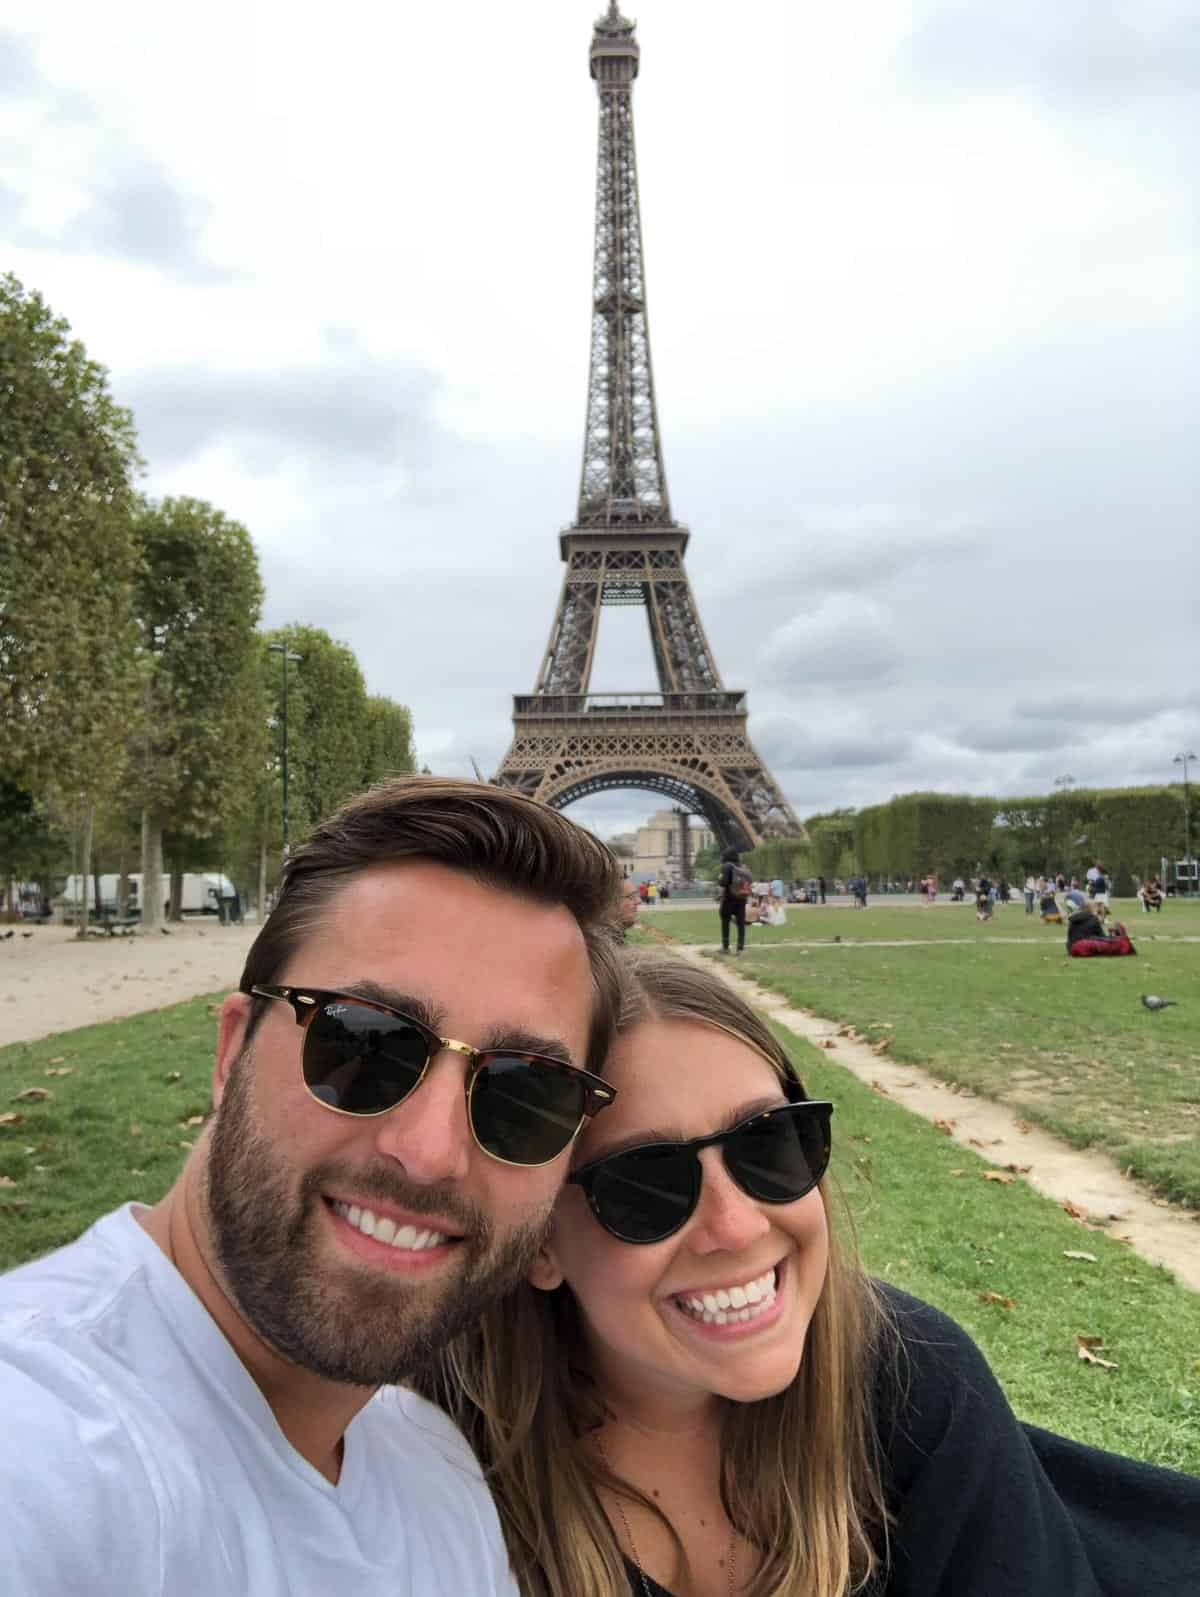 Kara and Steve smiling in front of the Eiffel Tower